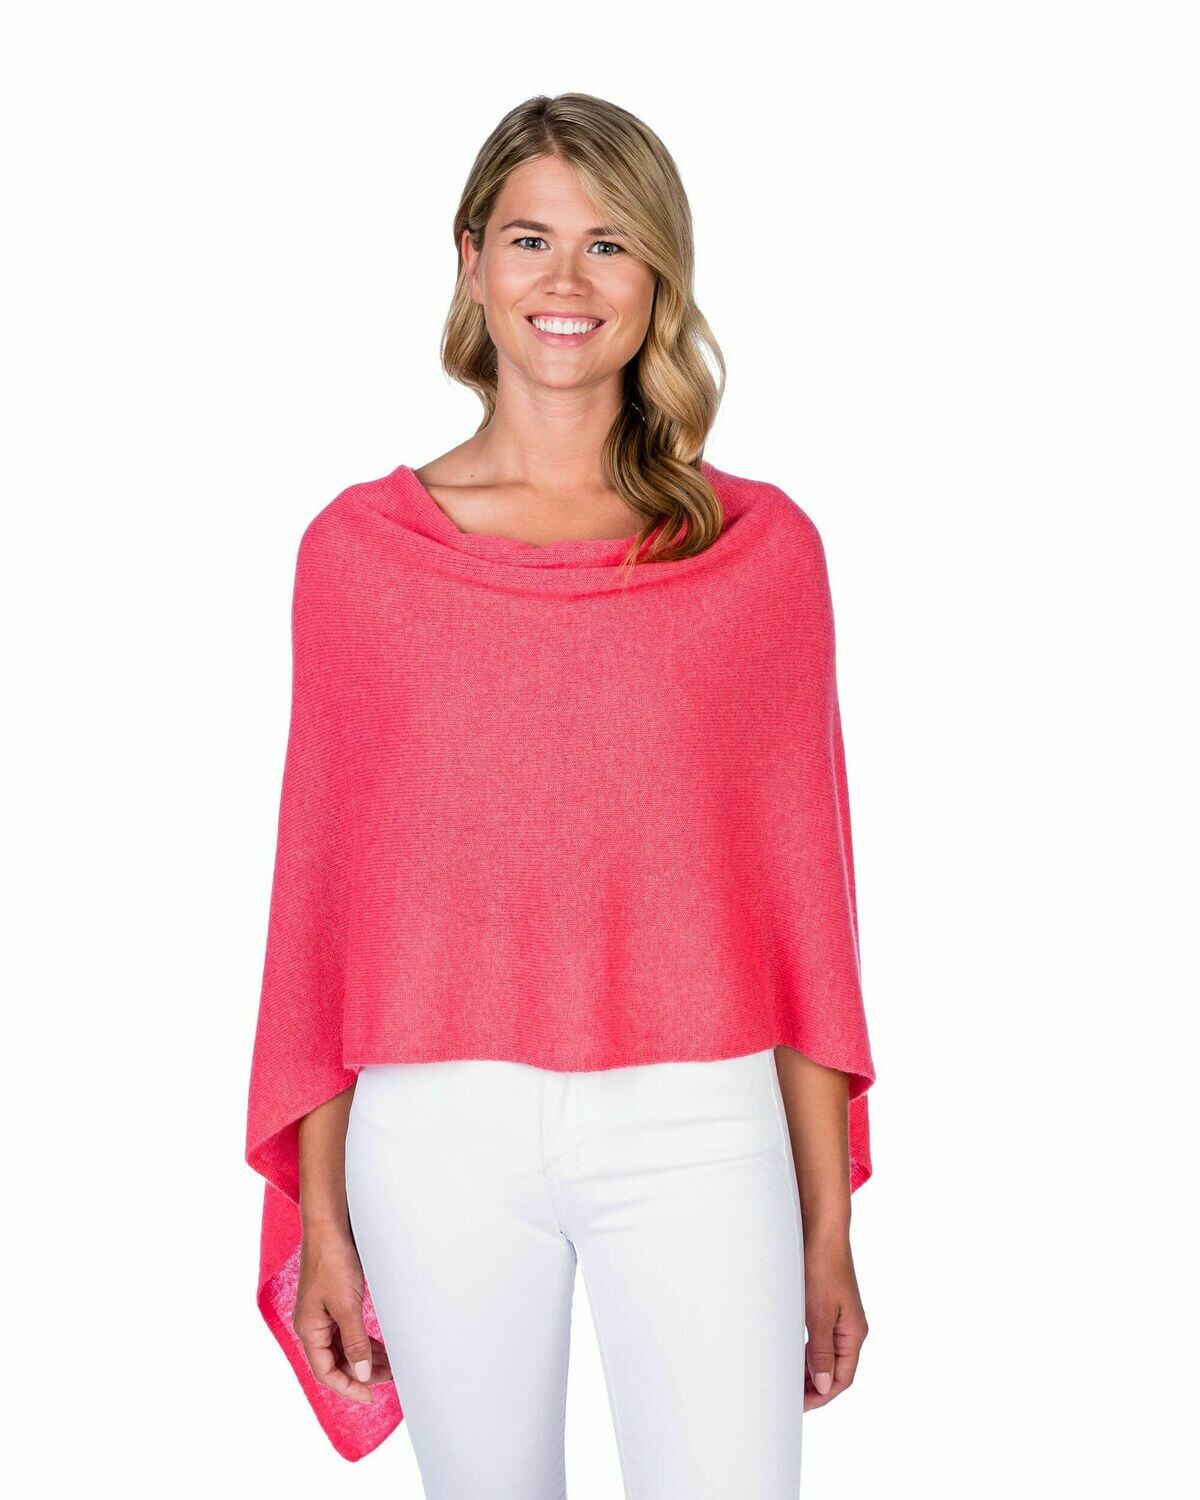 Jackie Z Cashmere Dress Topper in Coral Reef